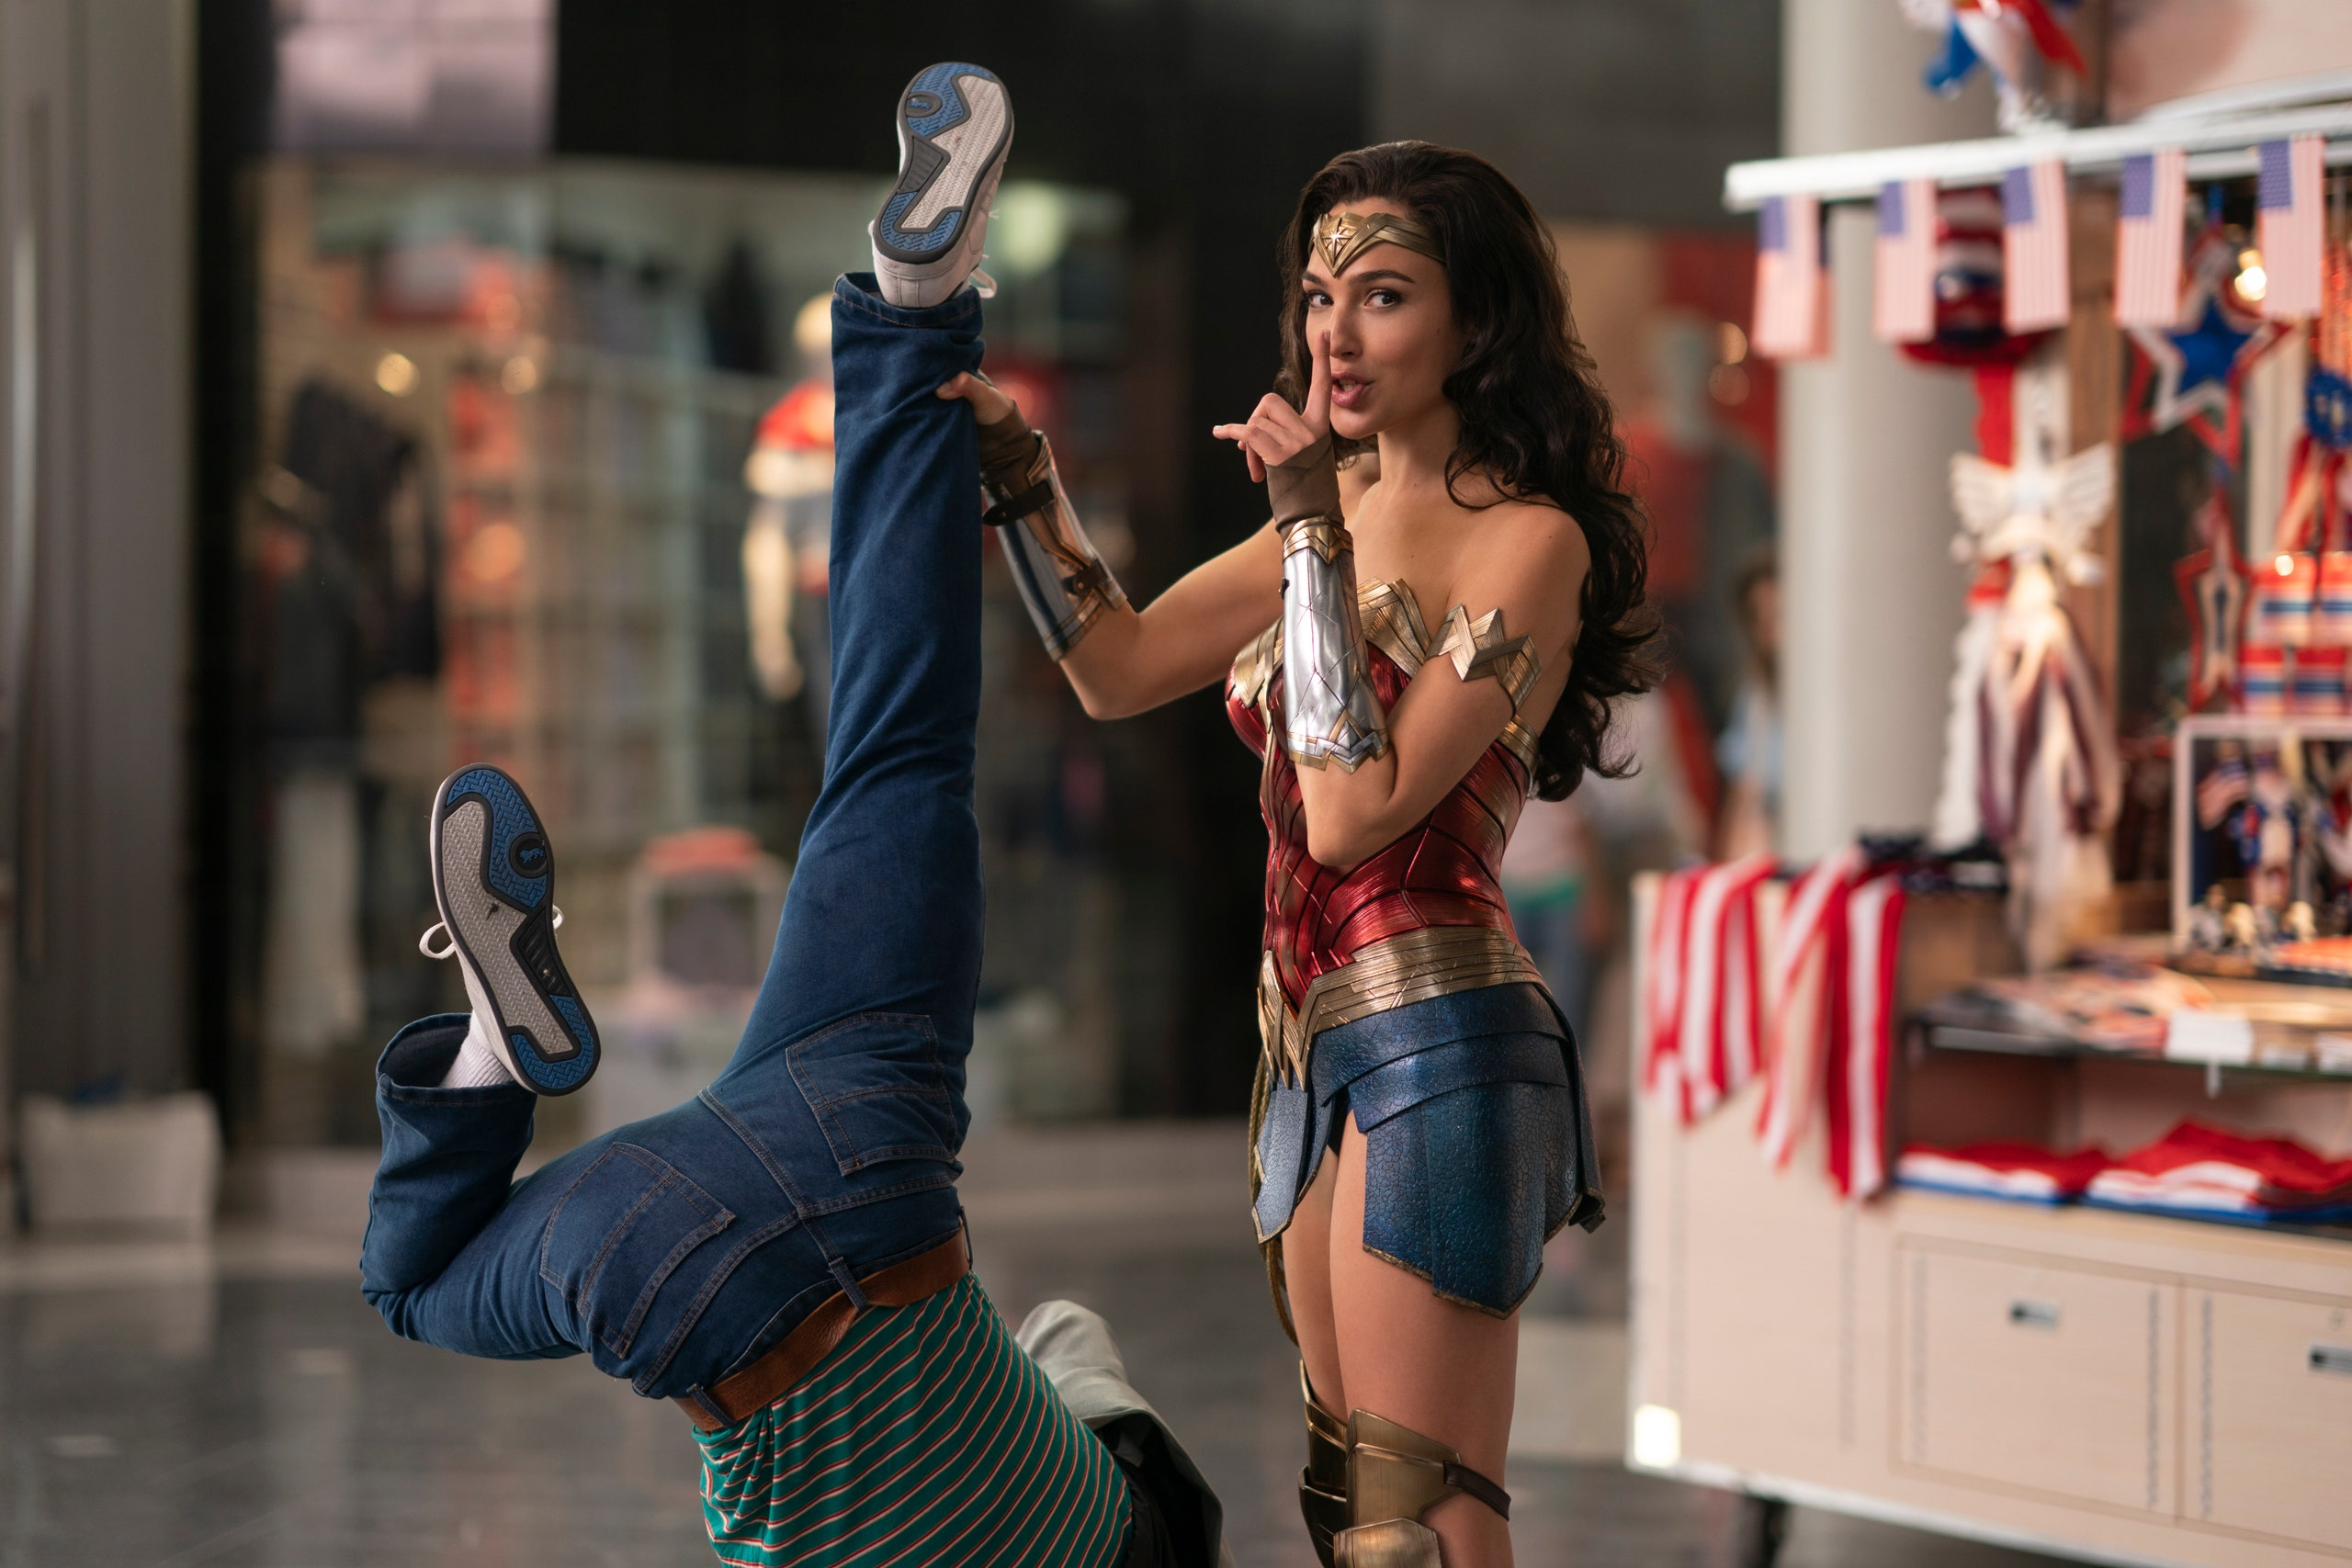 Wonder Woman holding up someone by the leg in Wonder Woman 1984.